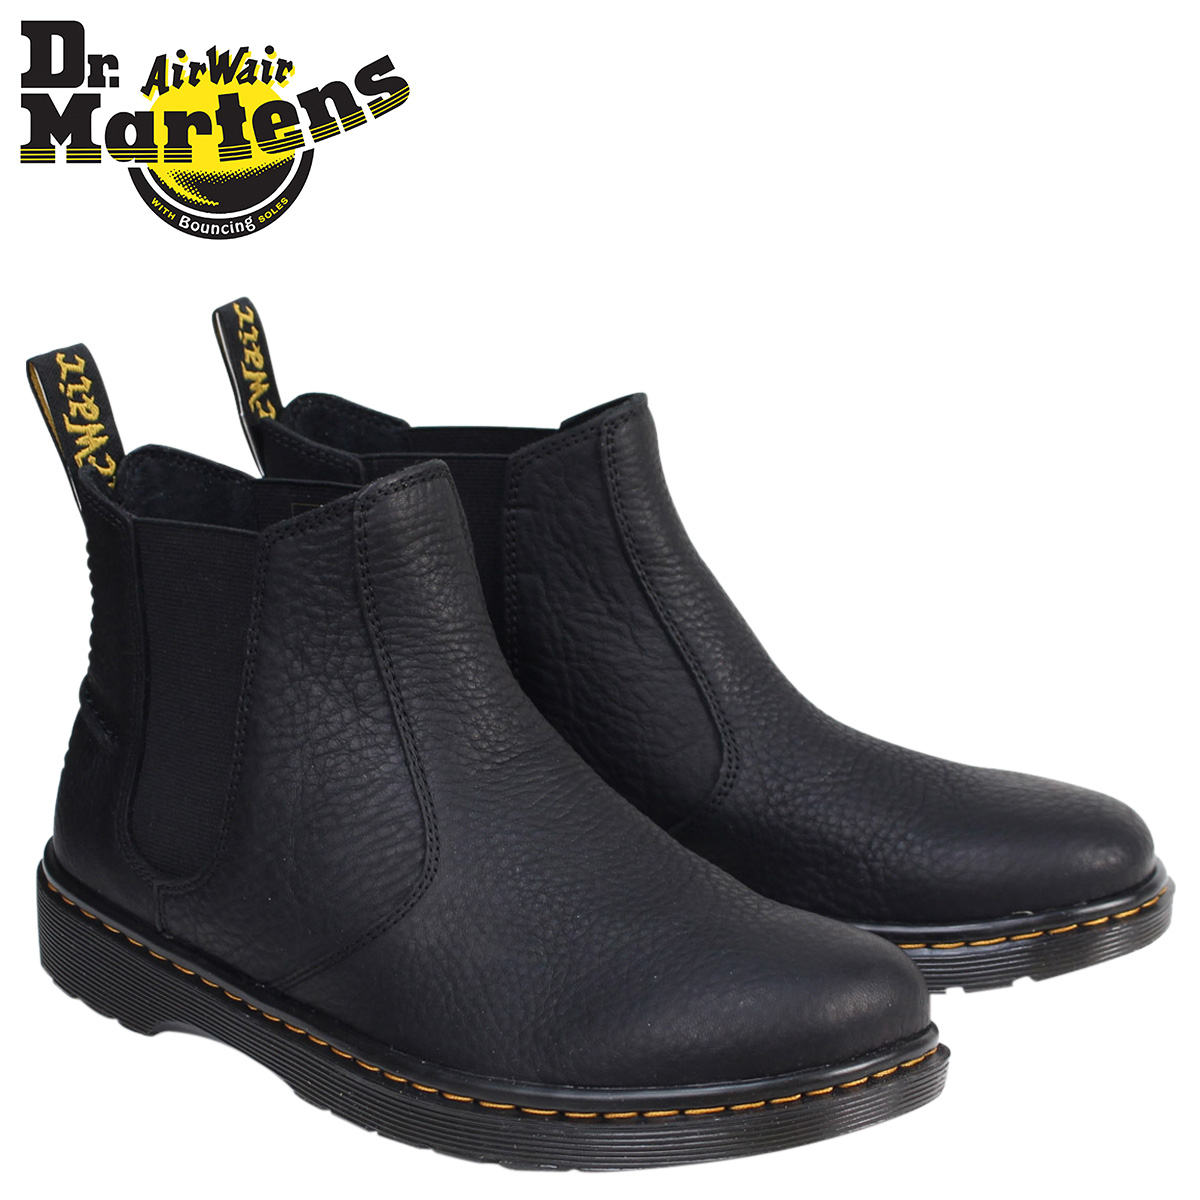 185d22d8a7e Doctor Martin side Gore men Dr.Martens boots Chelsea boot LYME GRIZZLY  CHELSEA BOOT R20868001 black [8/2 Shinnyu load]